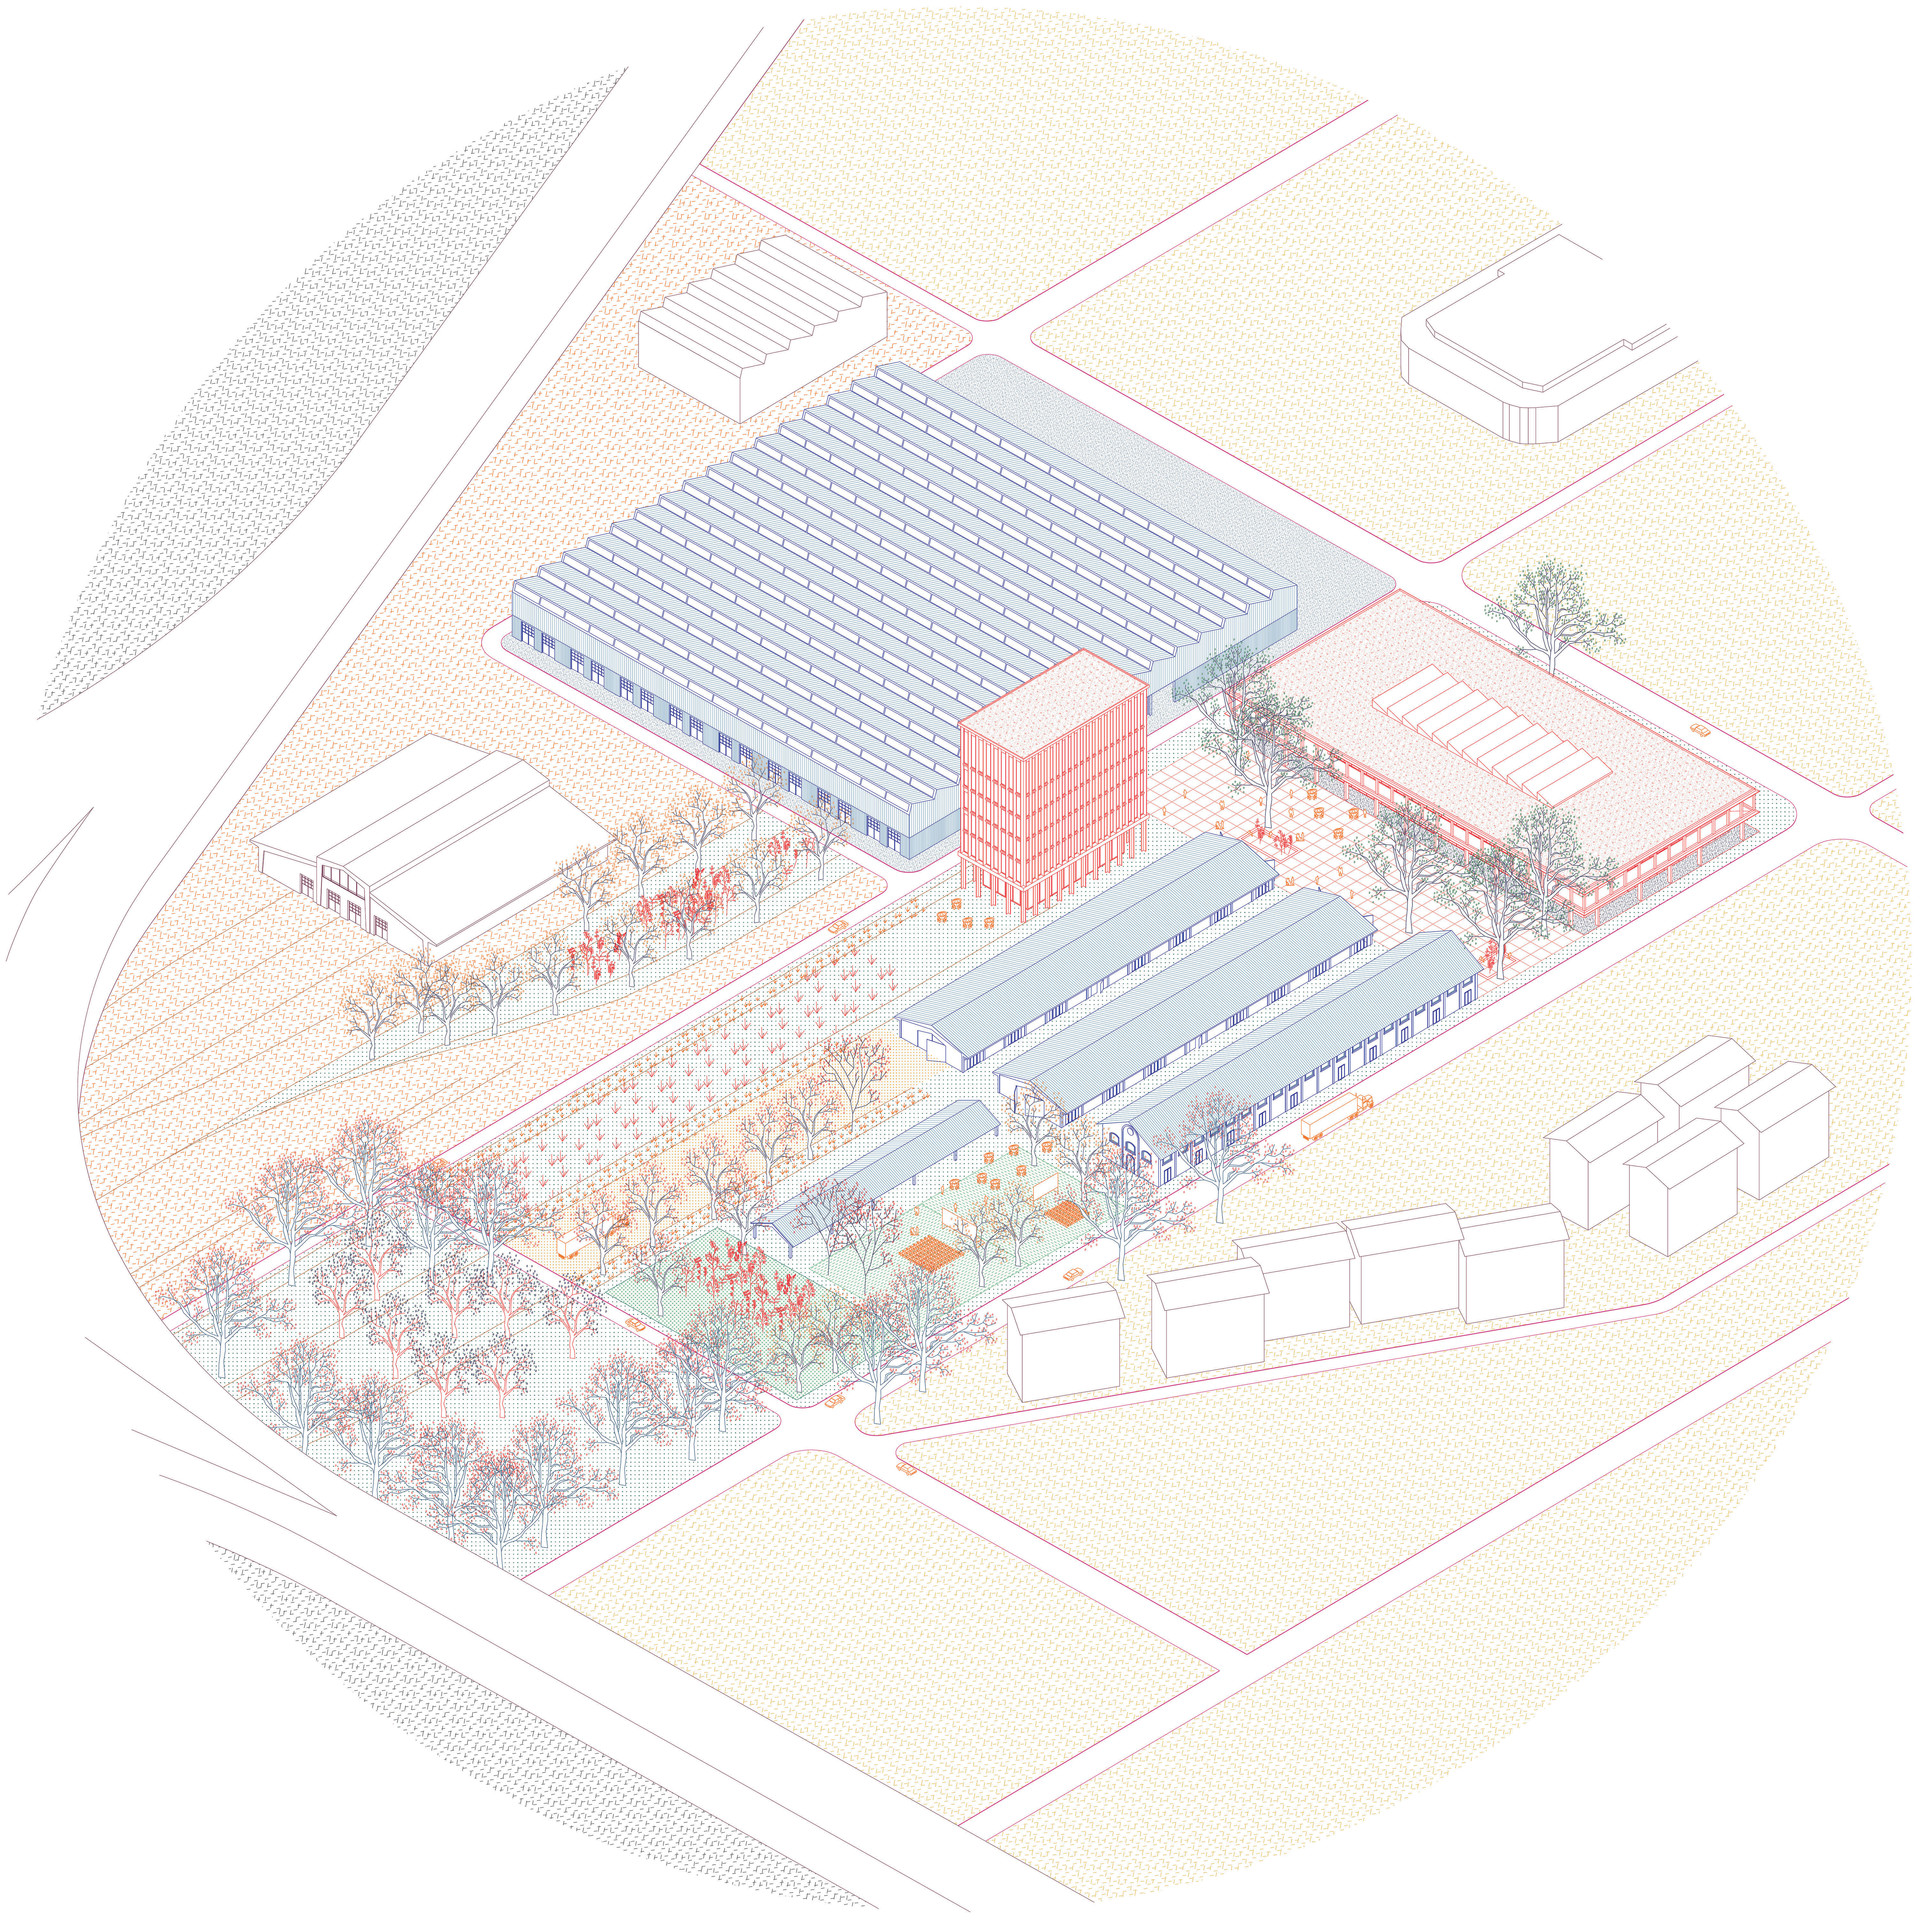 axonometric of the site